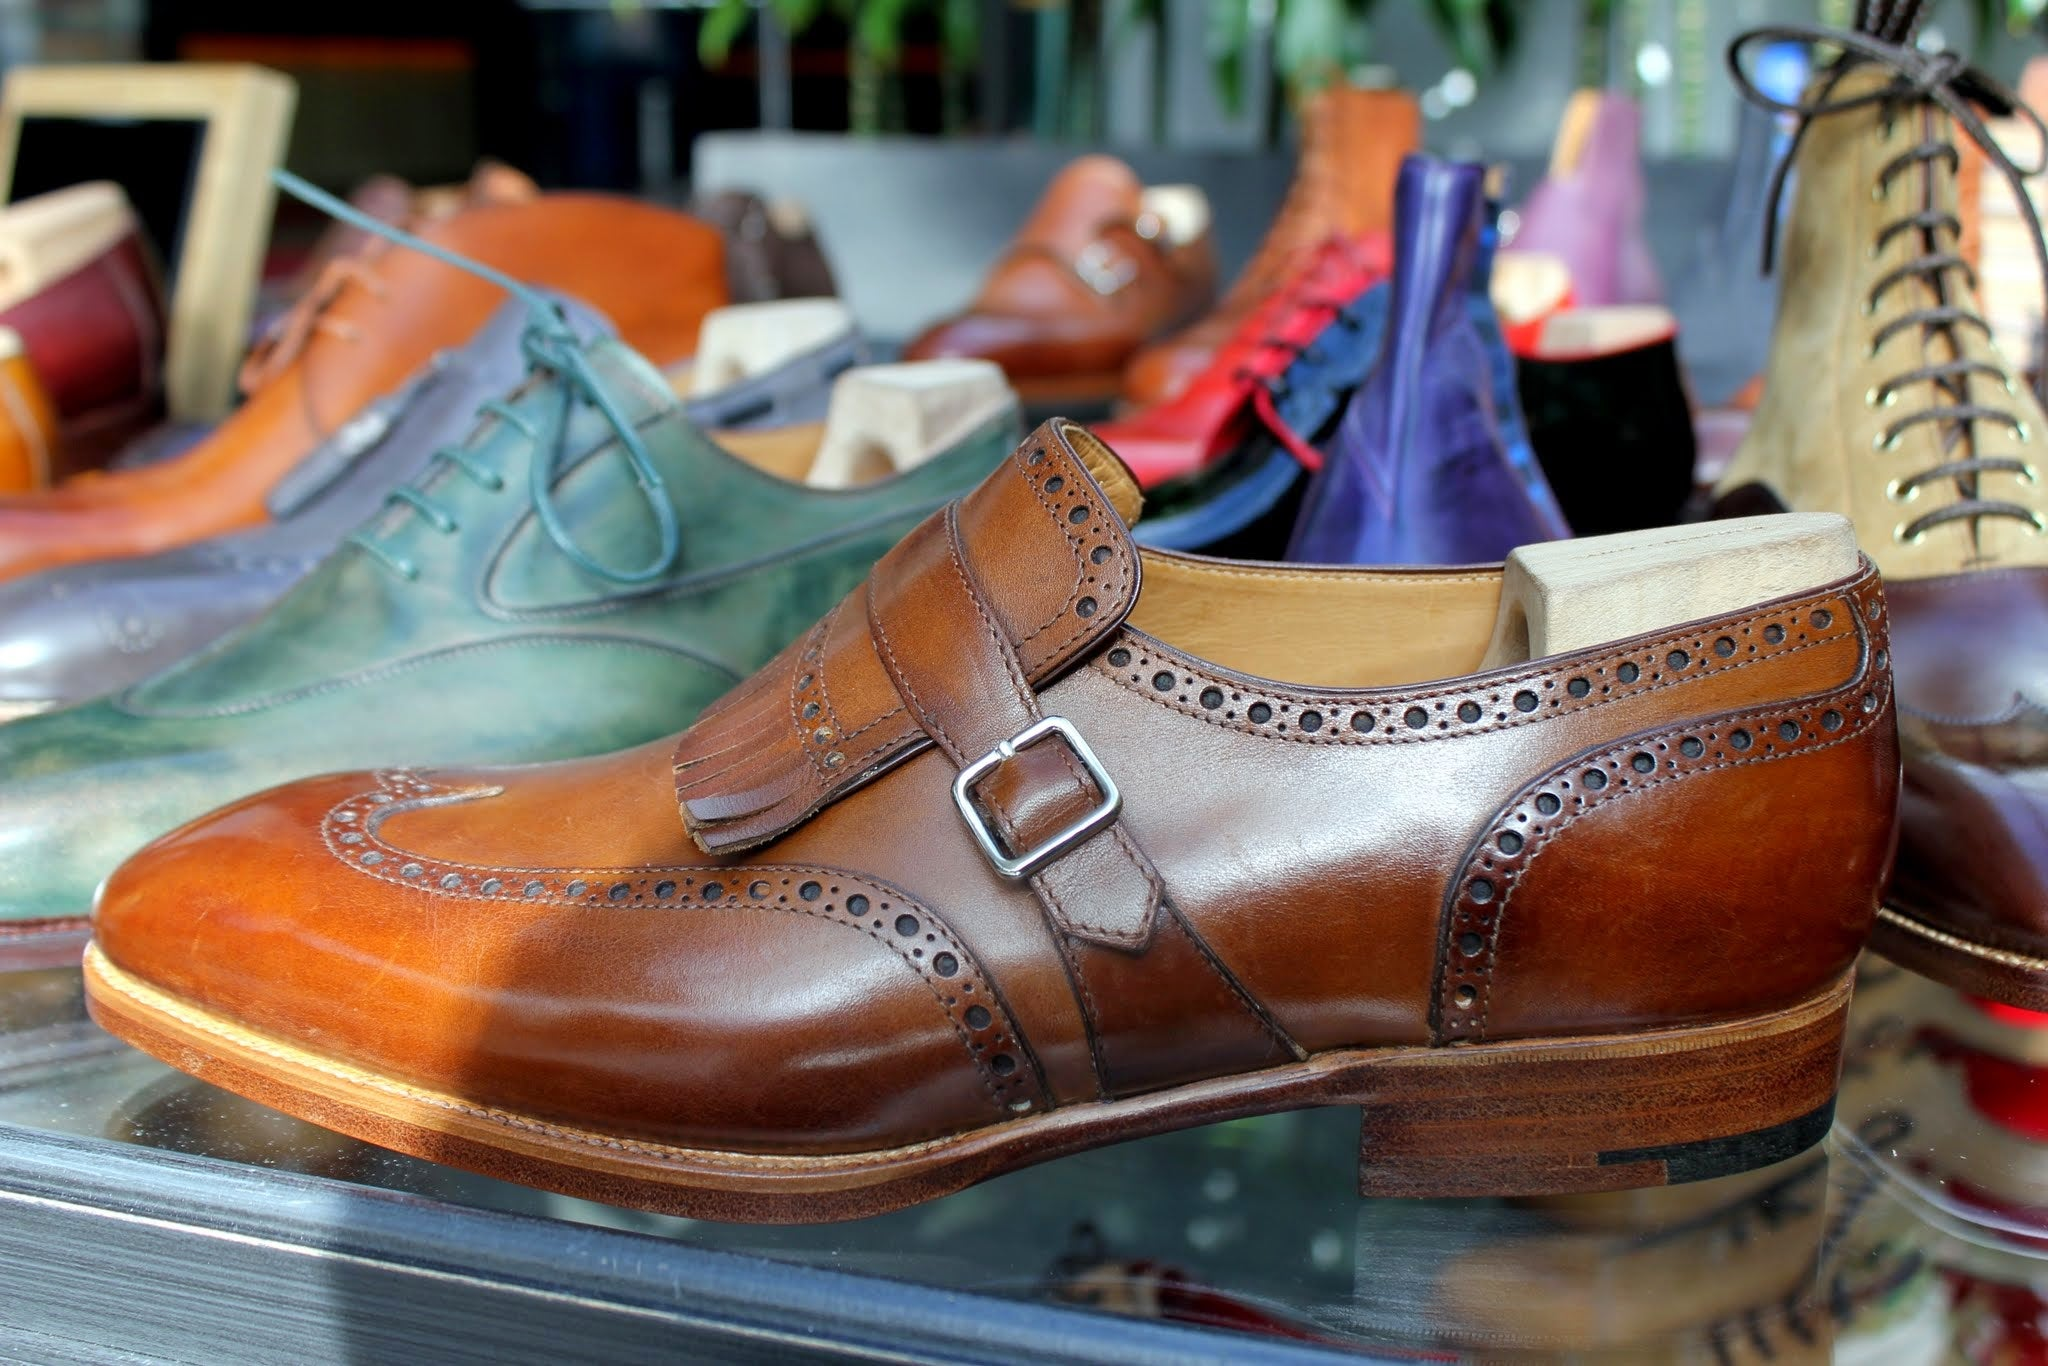 saint-crispins-shoes-monk-straps